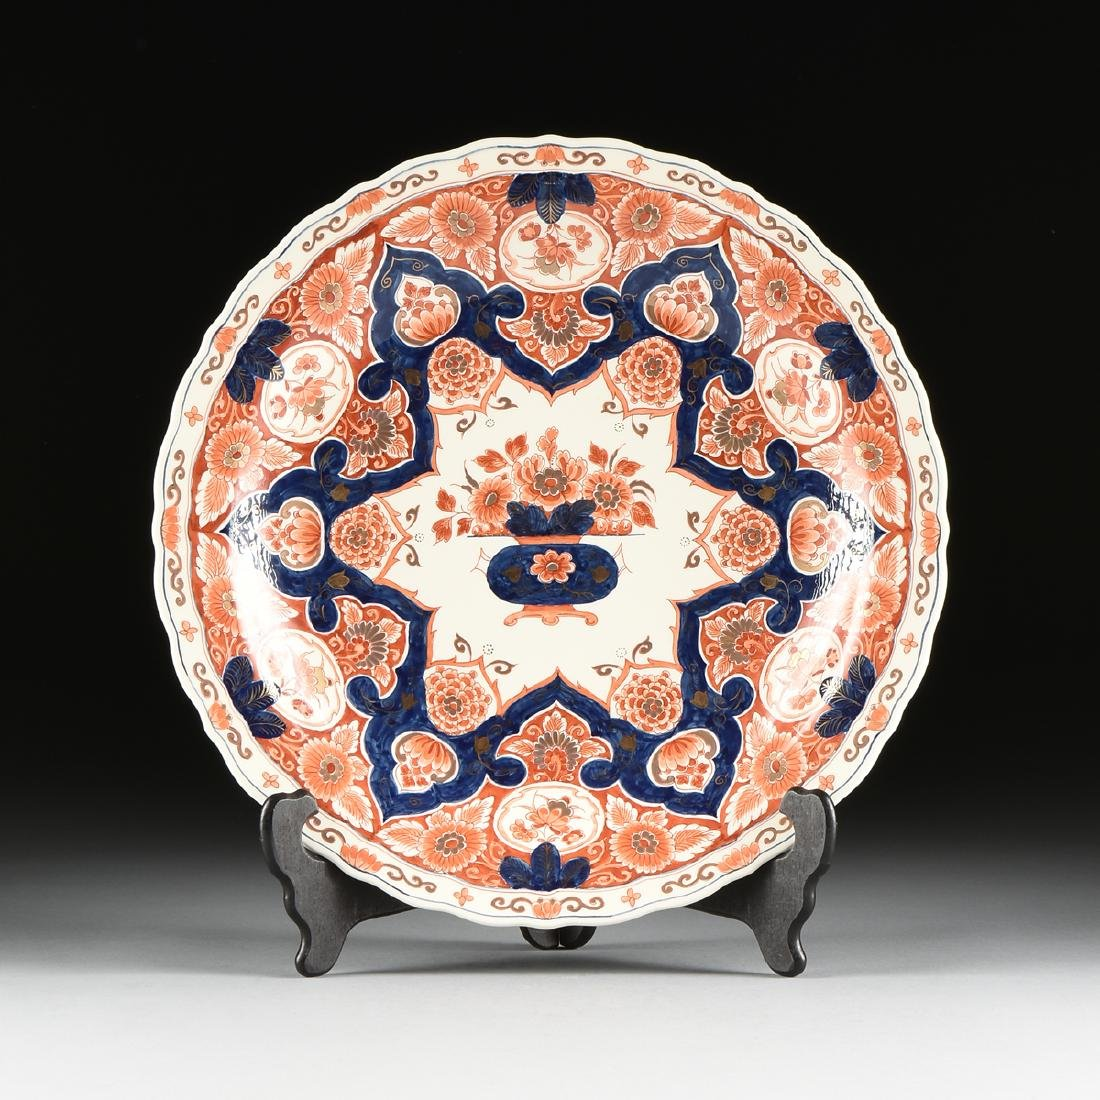 A ROYAL DELFT IMARI STYLE PARCEL GILT ENAMELED CHARGER,